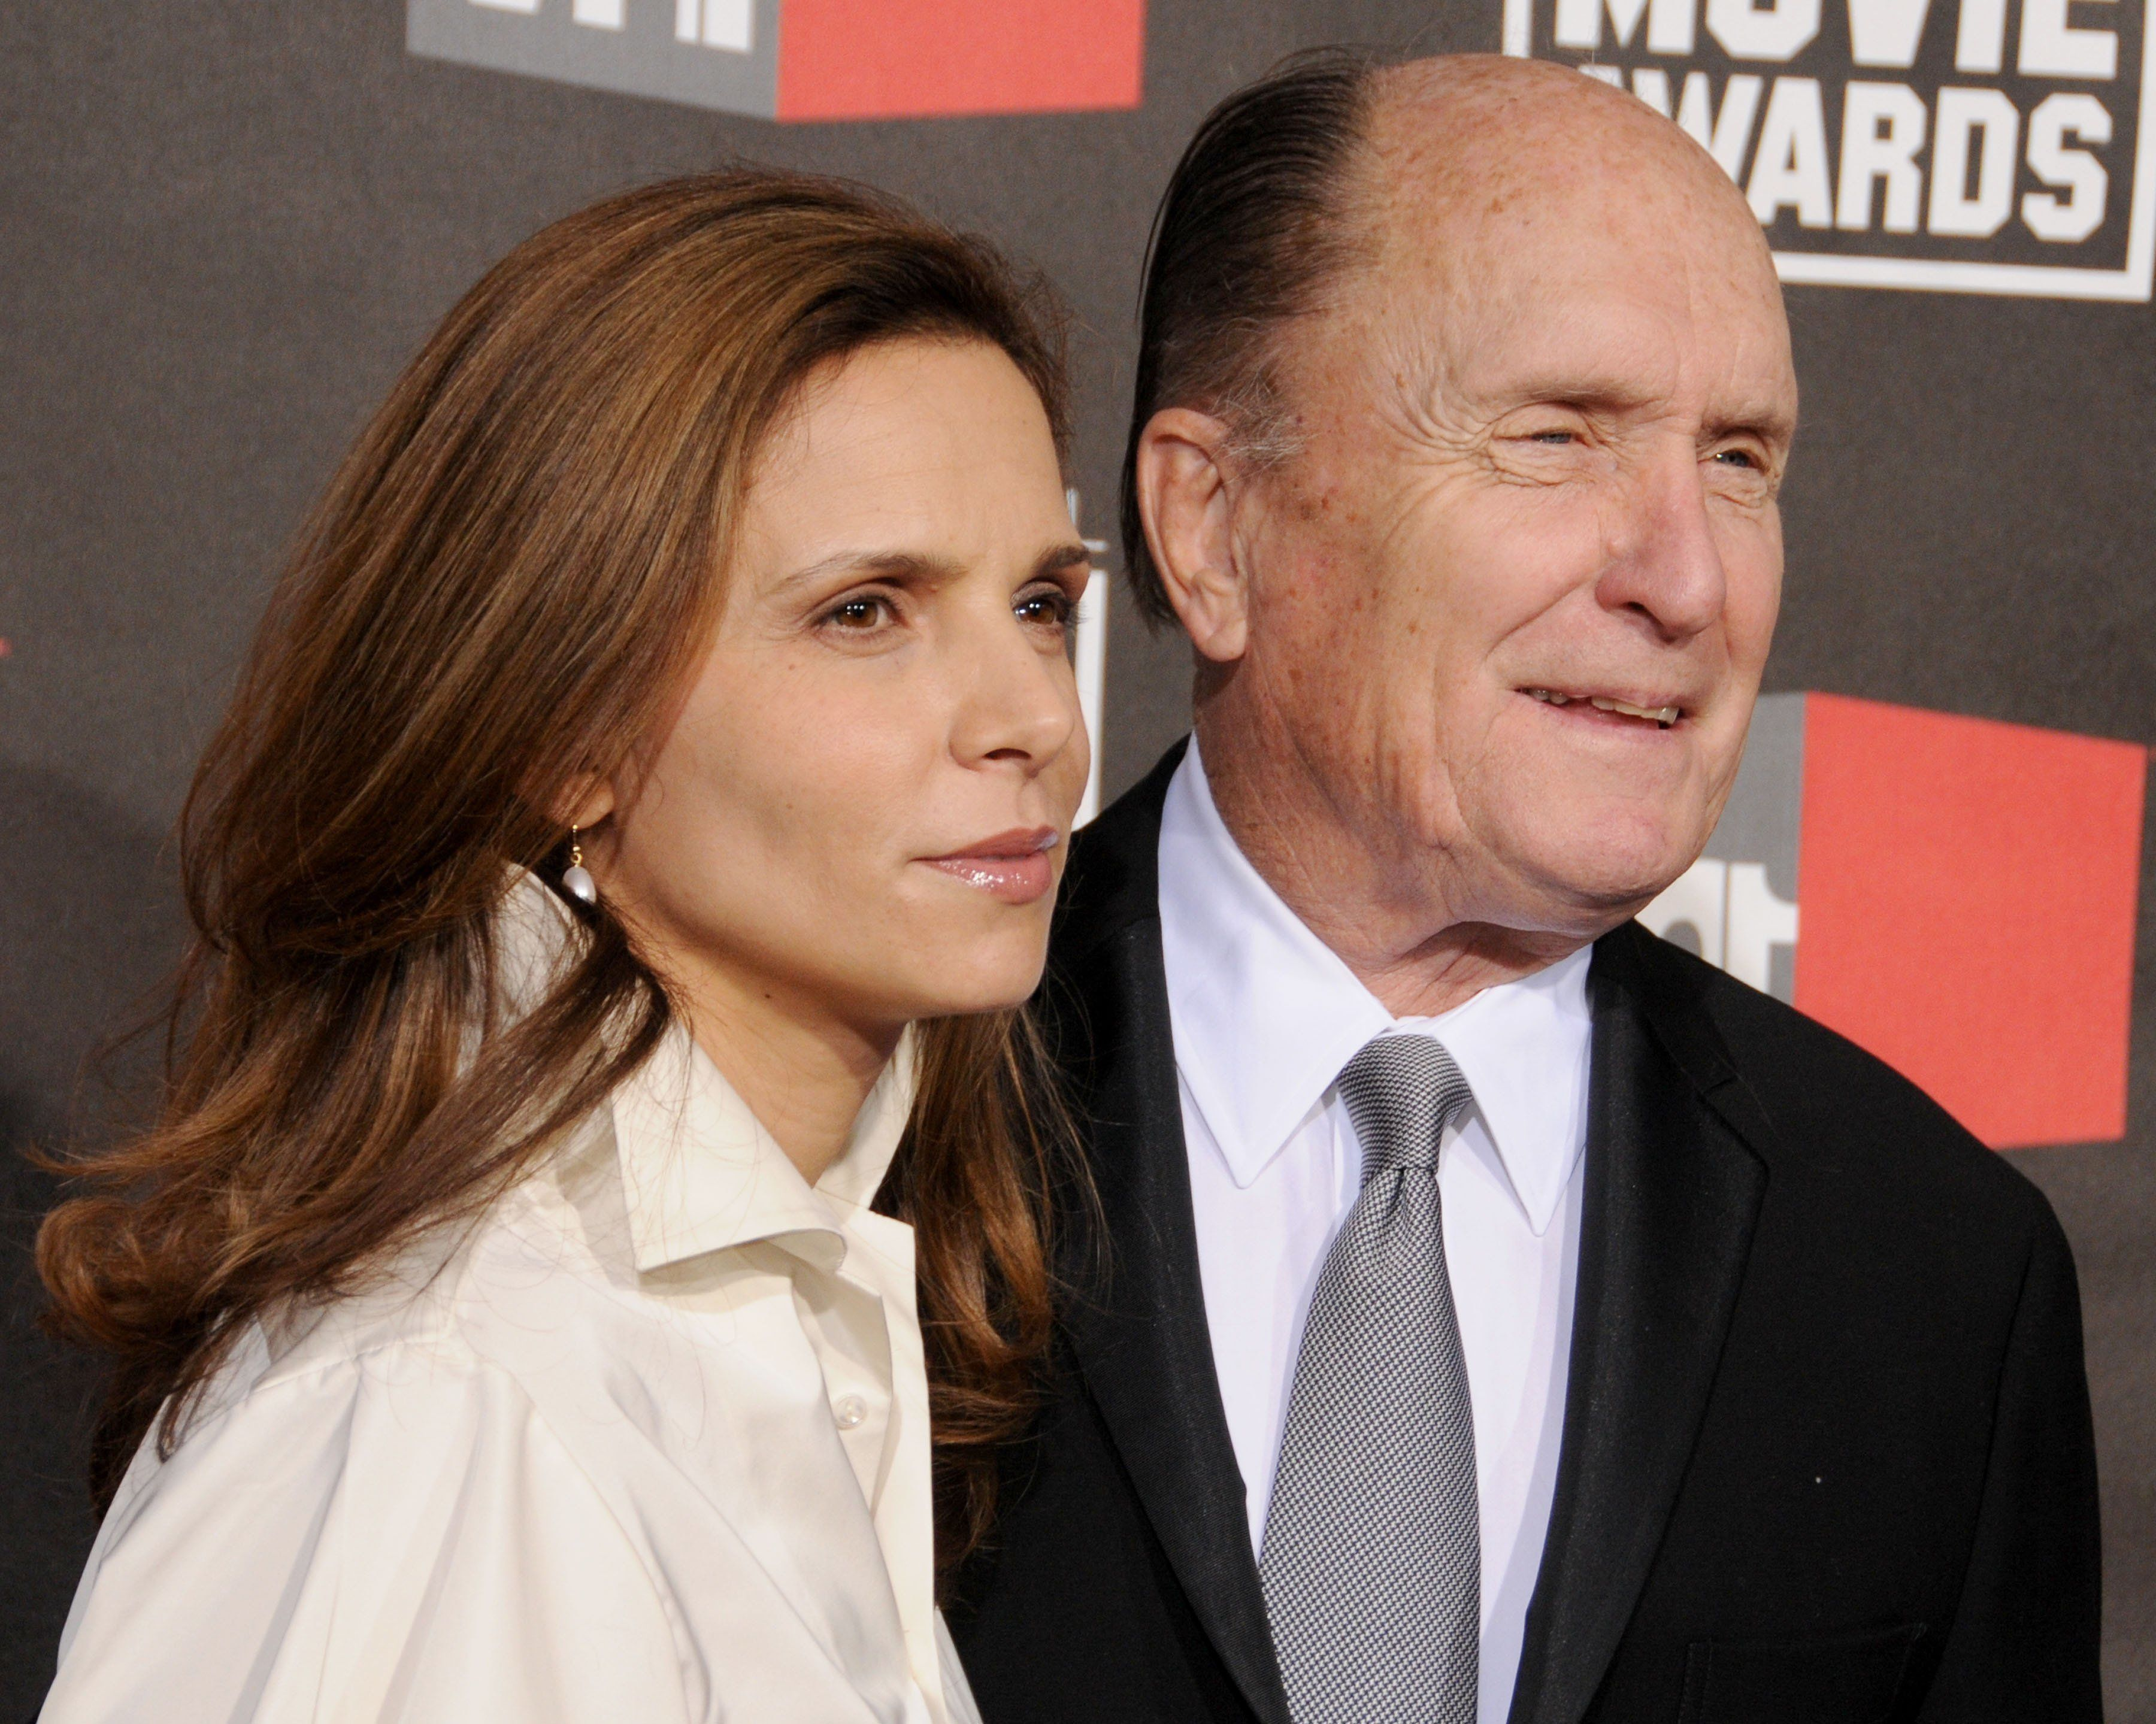 HOLLYWOOD, CA - JANUARY 14: Robert Duvall and Luciana Pedraza arrive at The 16th Annual Critics' Choice Movie Awards at the Hollywood Palladium on January 14, 2011 in Hollywood, California. (Photo by Gregg DeGuire/FilmMagic)